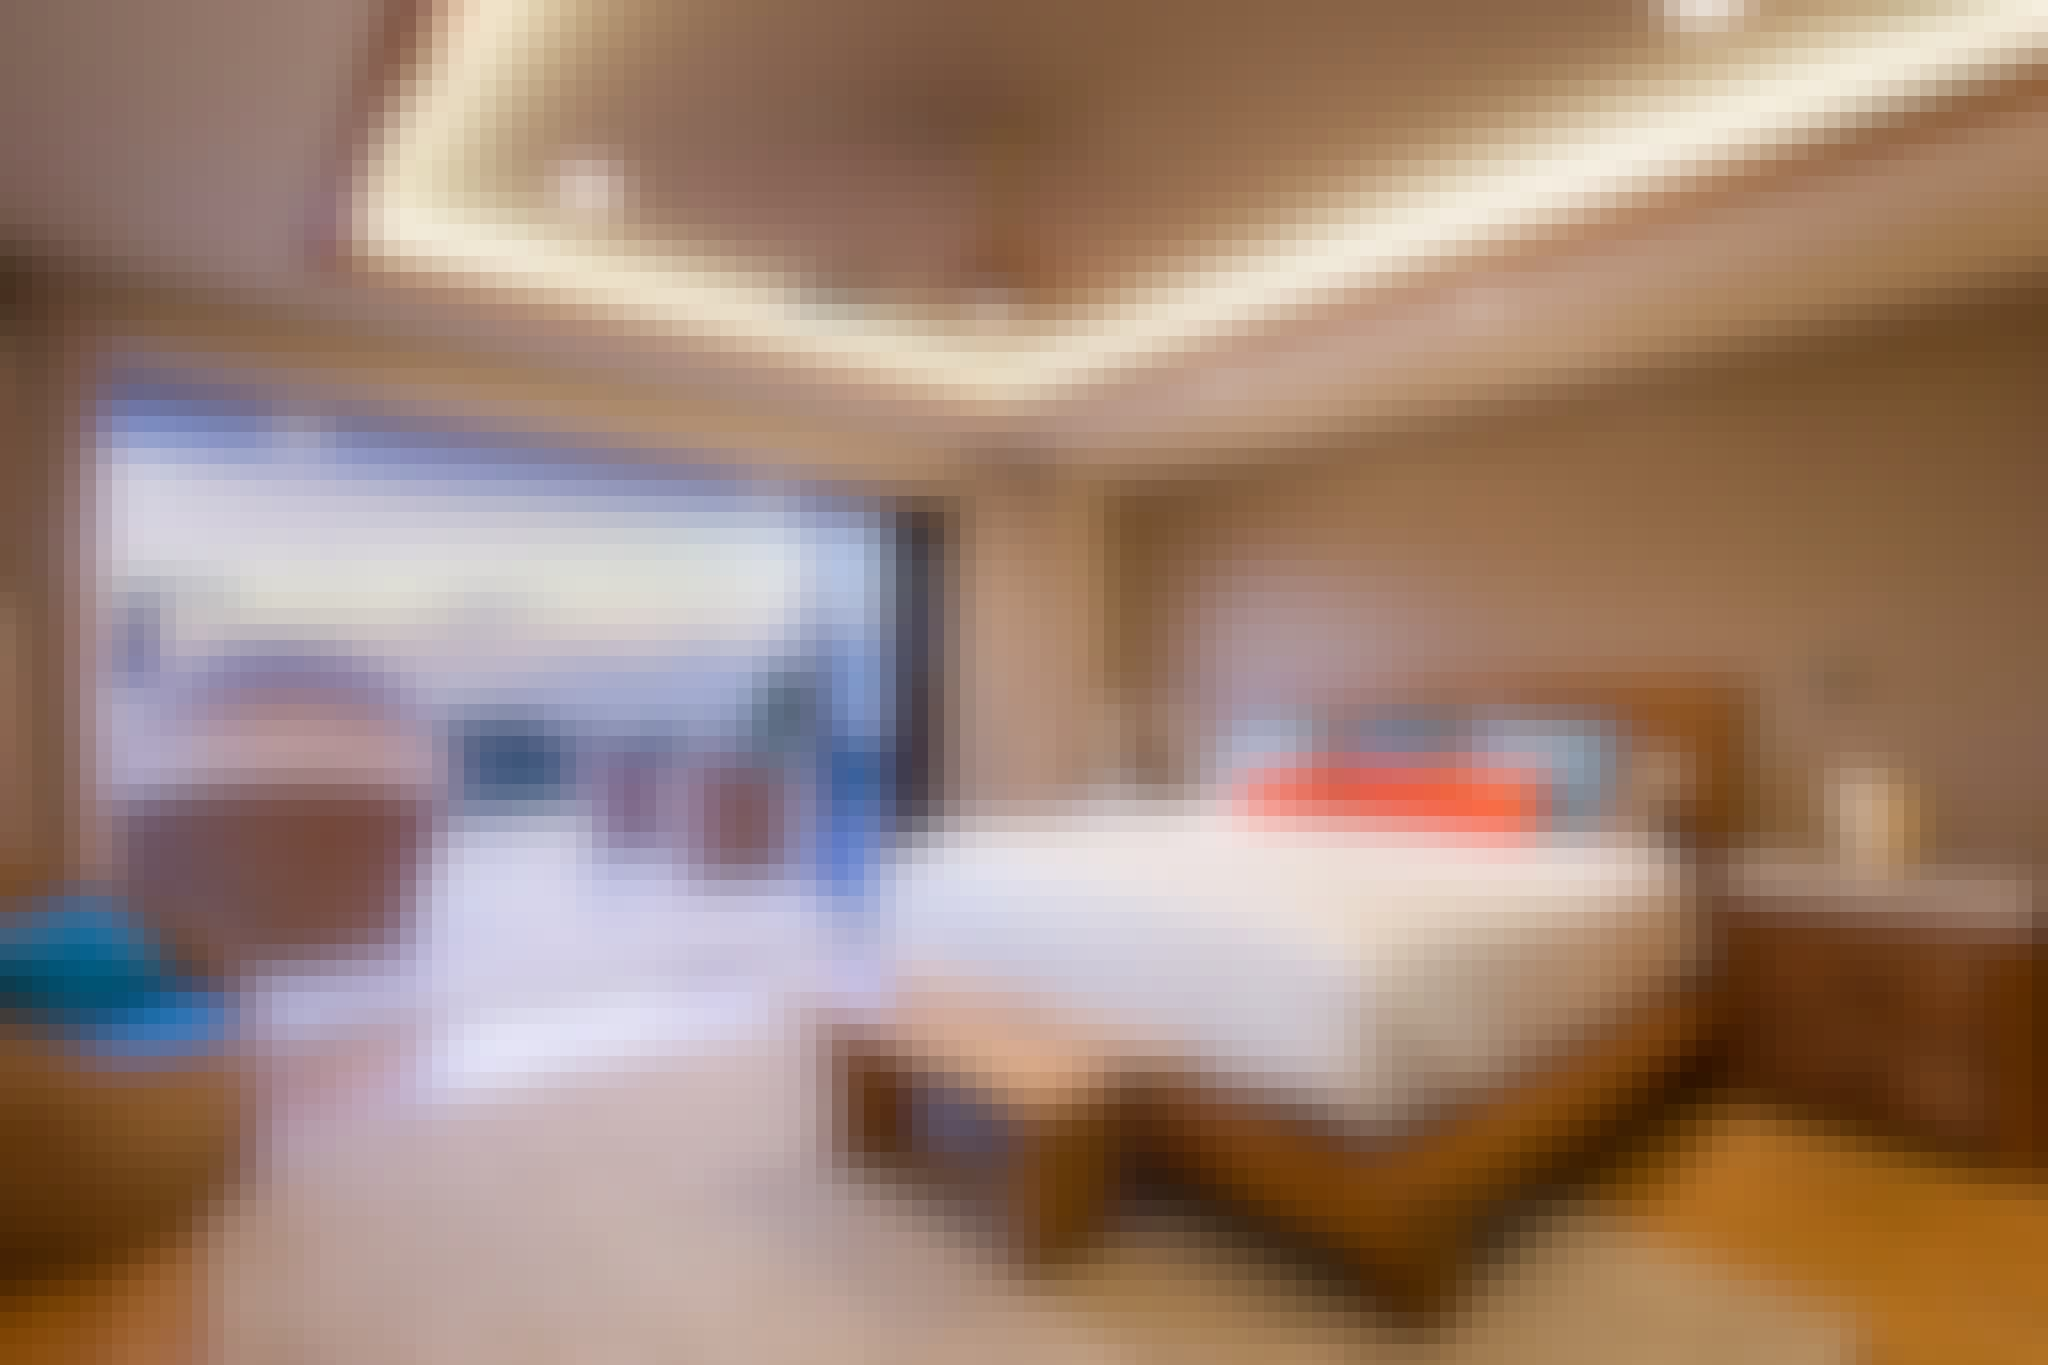 moveable glass wall systems in a bedroom